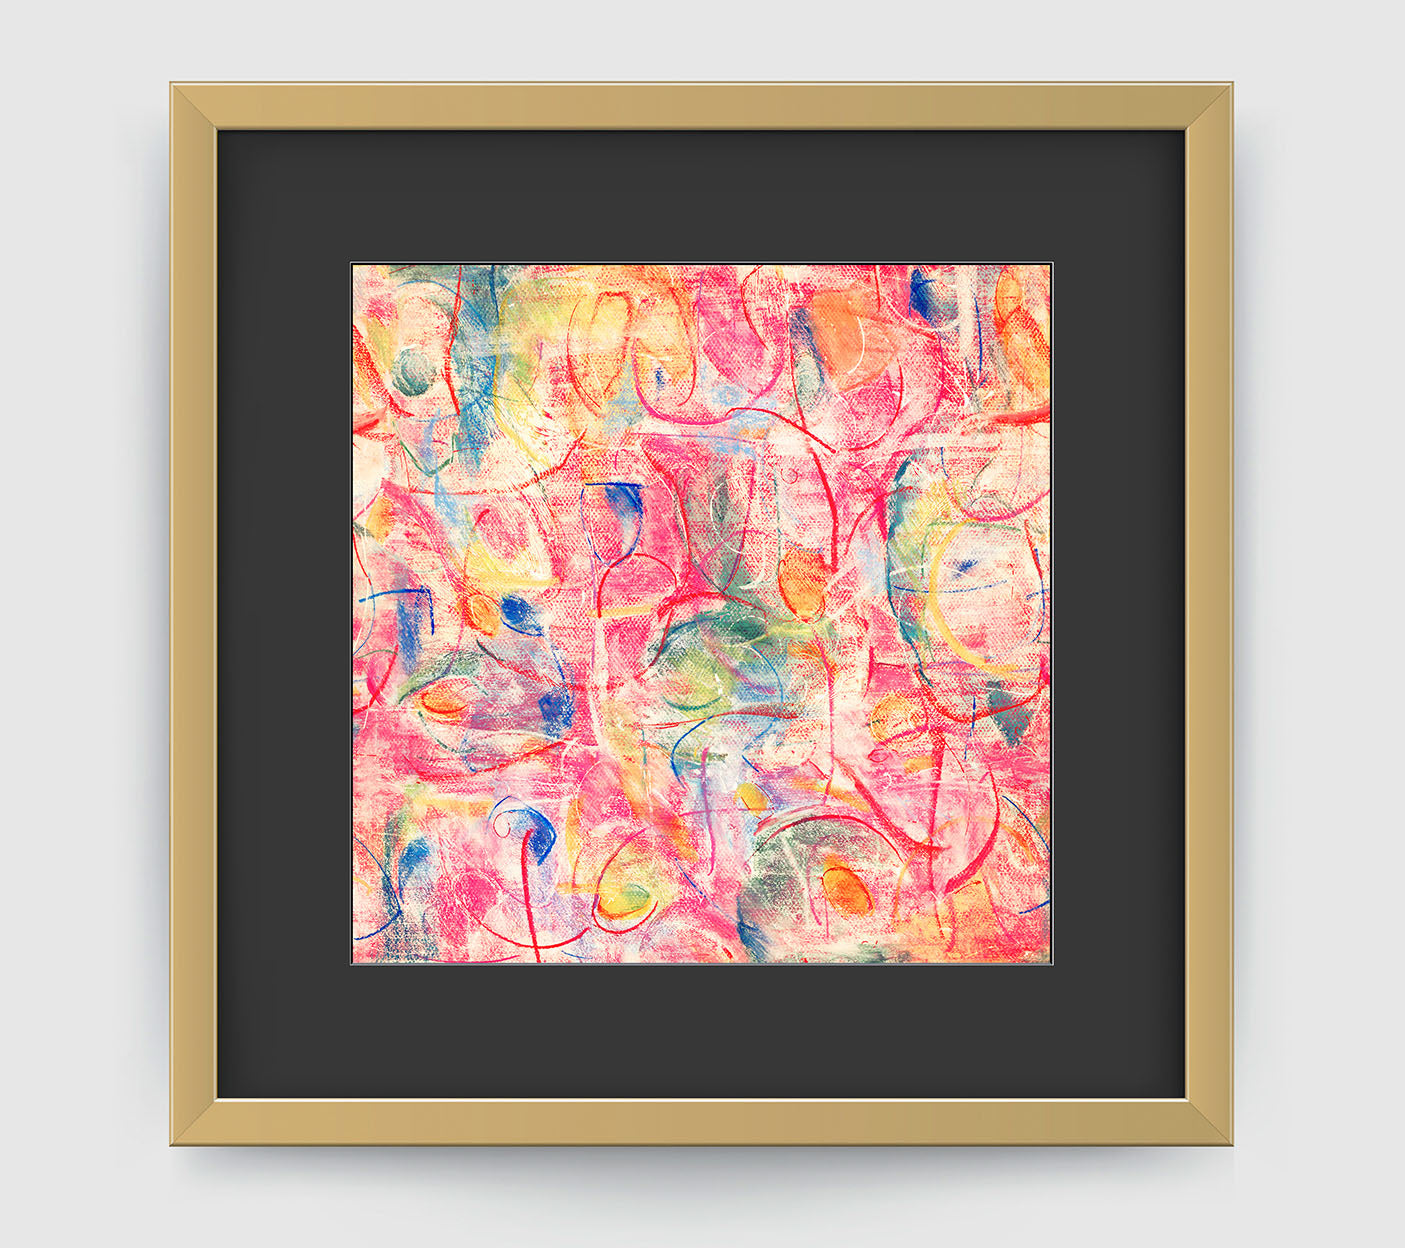 Voila Abstract Art Print Di Lewis Living Room Wall Decor